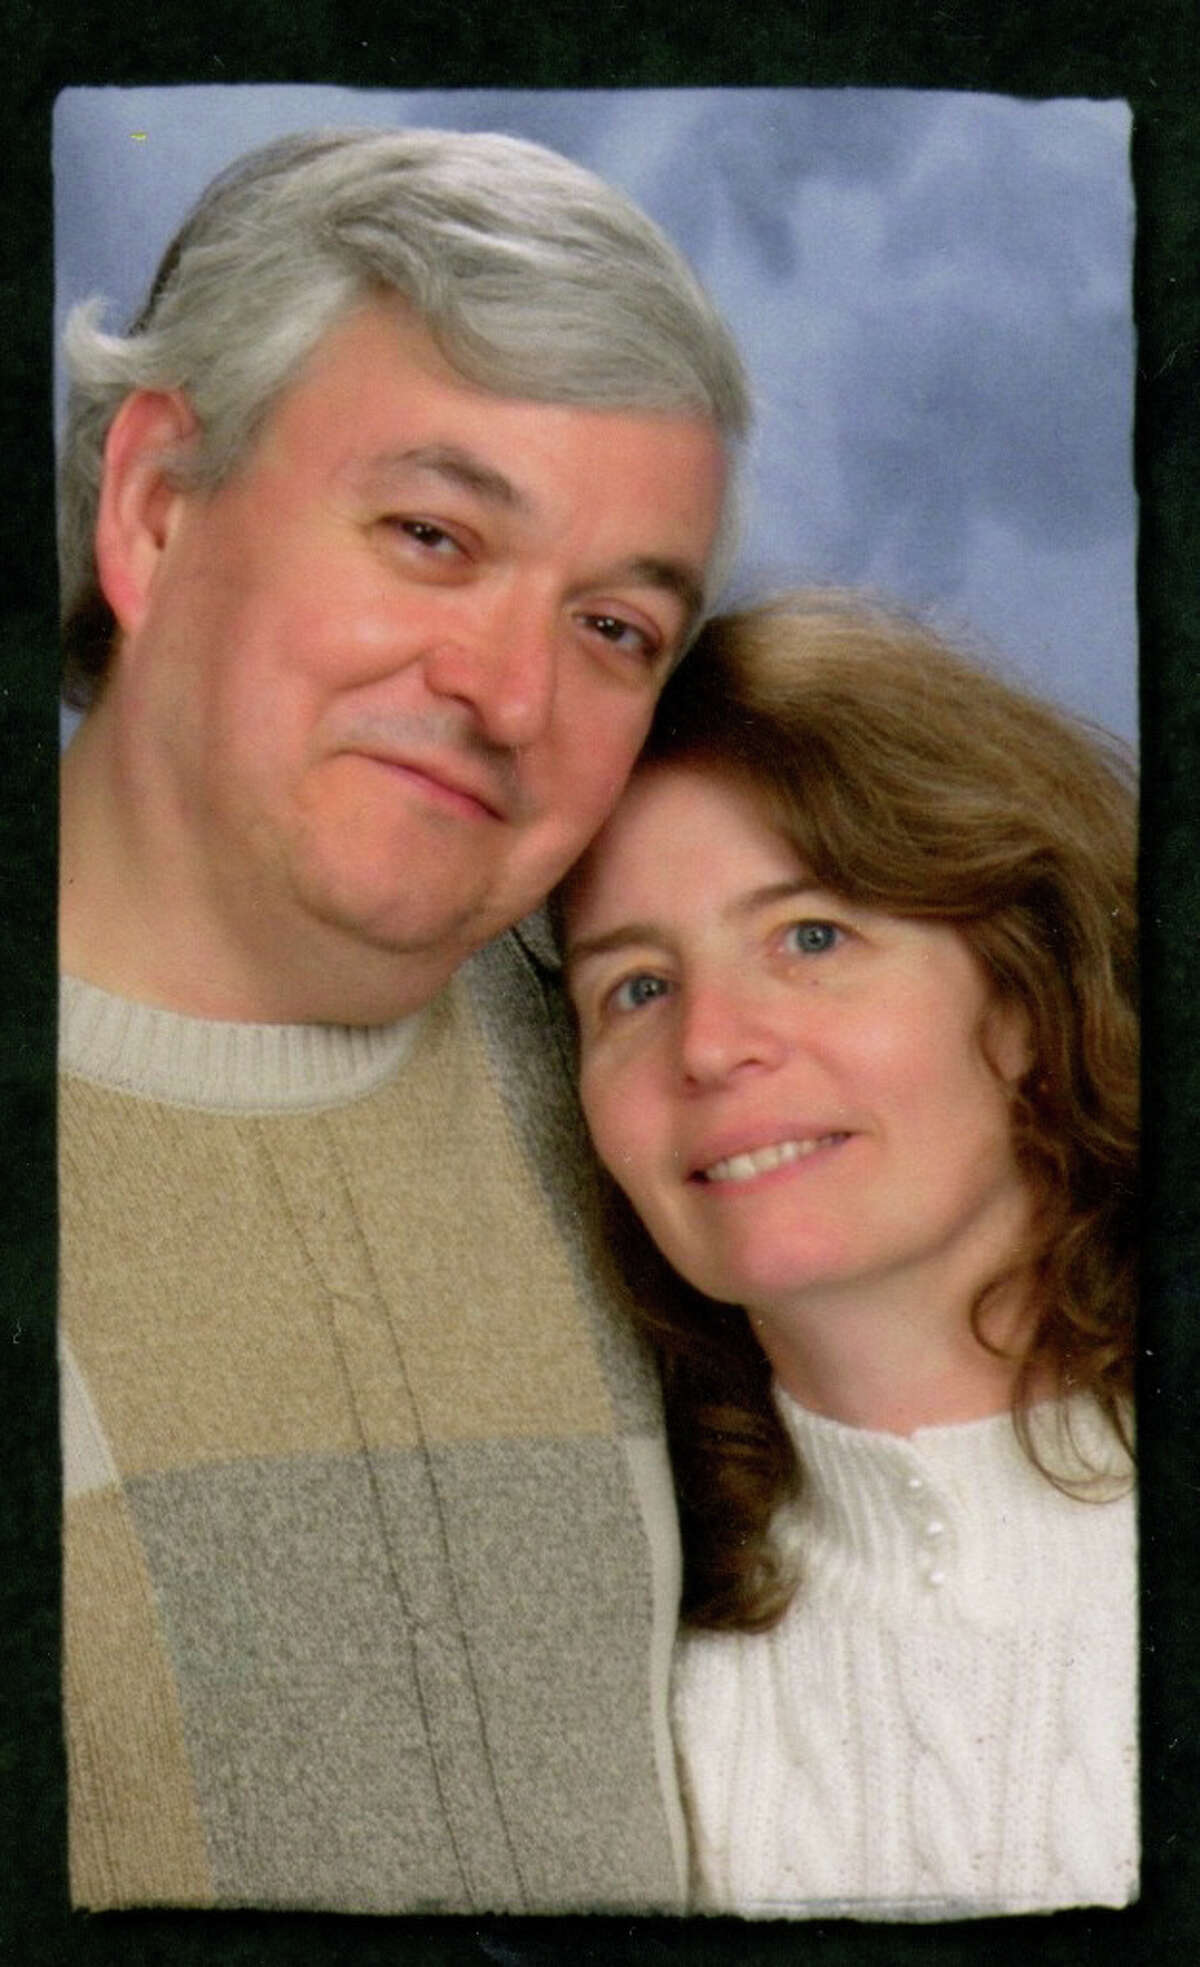 Kevin and Brenda Tanski have both died from injuries received when they were run over by an SUV on Bridgeport Avenue in Milford. It was one of the most tragic traffic accidents in the cityâÄôs history. The joint funeral will take place Friday at the Holy Name of Jesus Church on Barnum Avenue in Stratford.